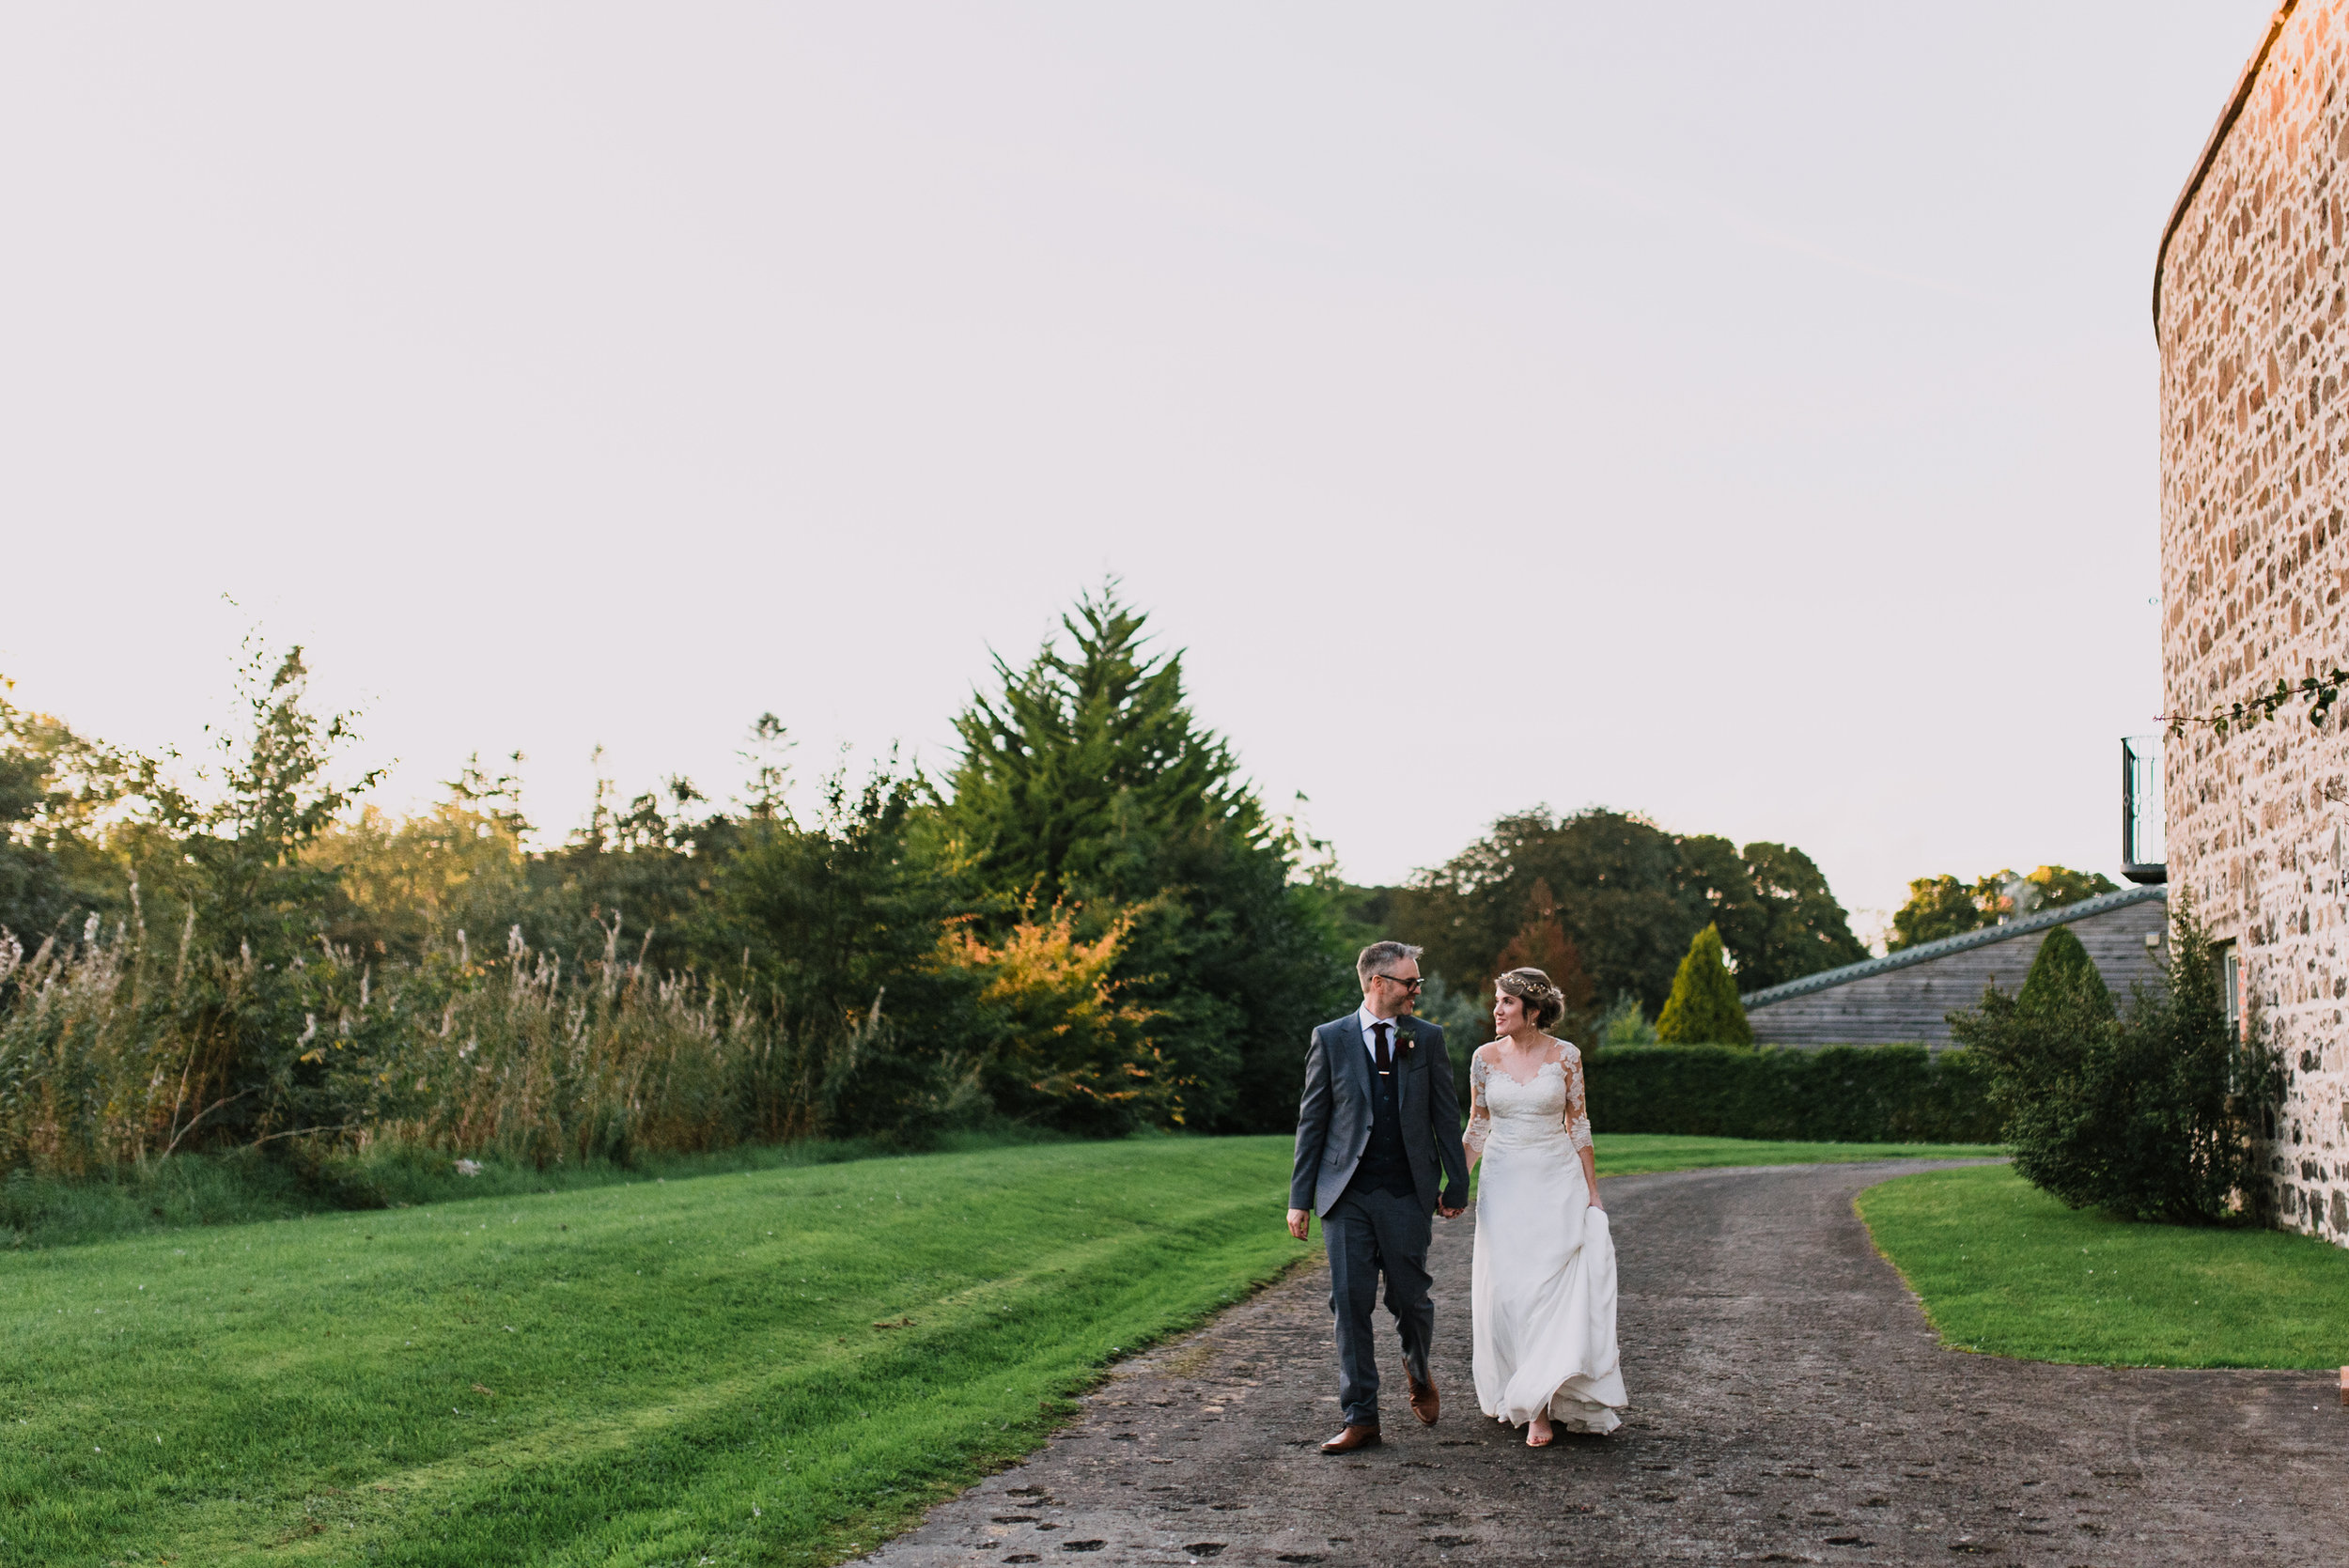 lissanoure castle wedding, northern ireland wedding photographer, romantic northern irish wedding venue, castle wedding ireland, natural wedding photography ni (119).jpg